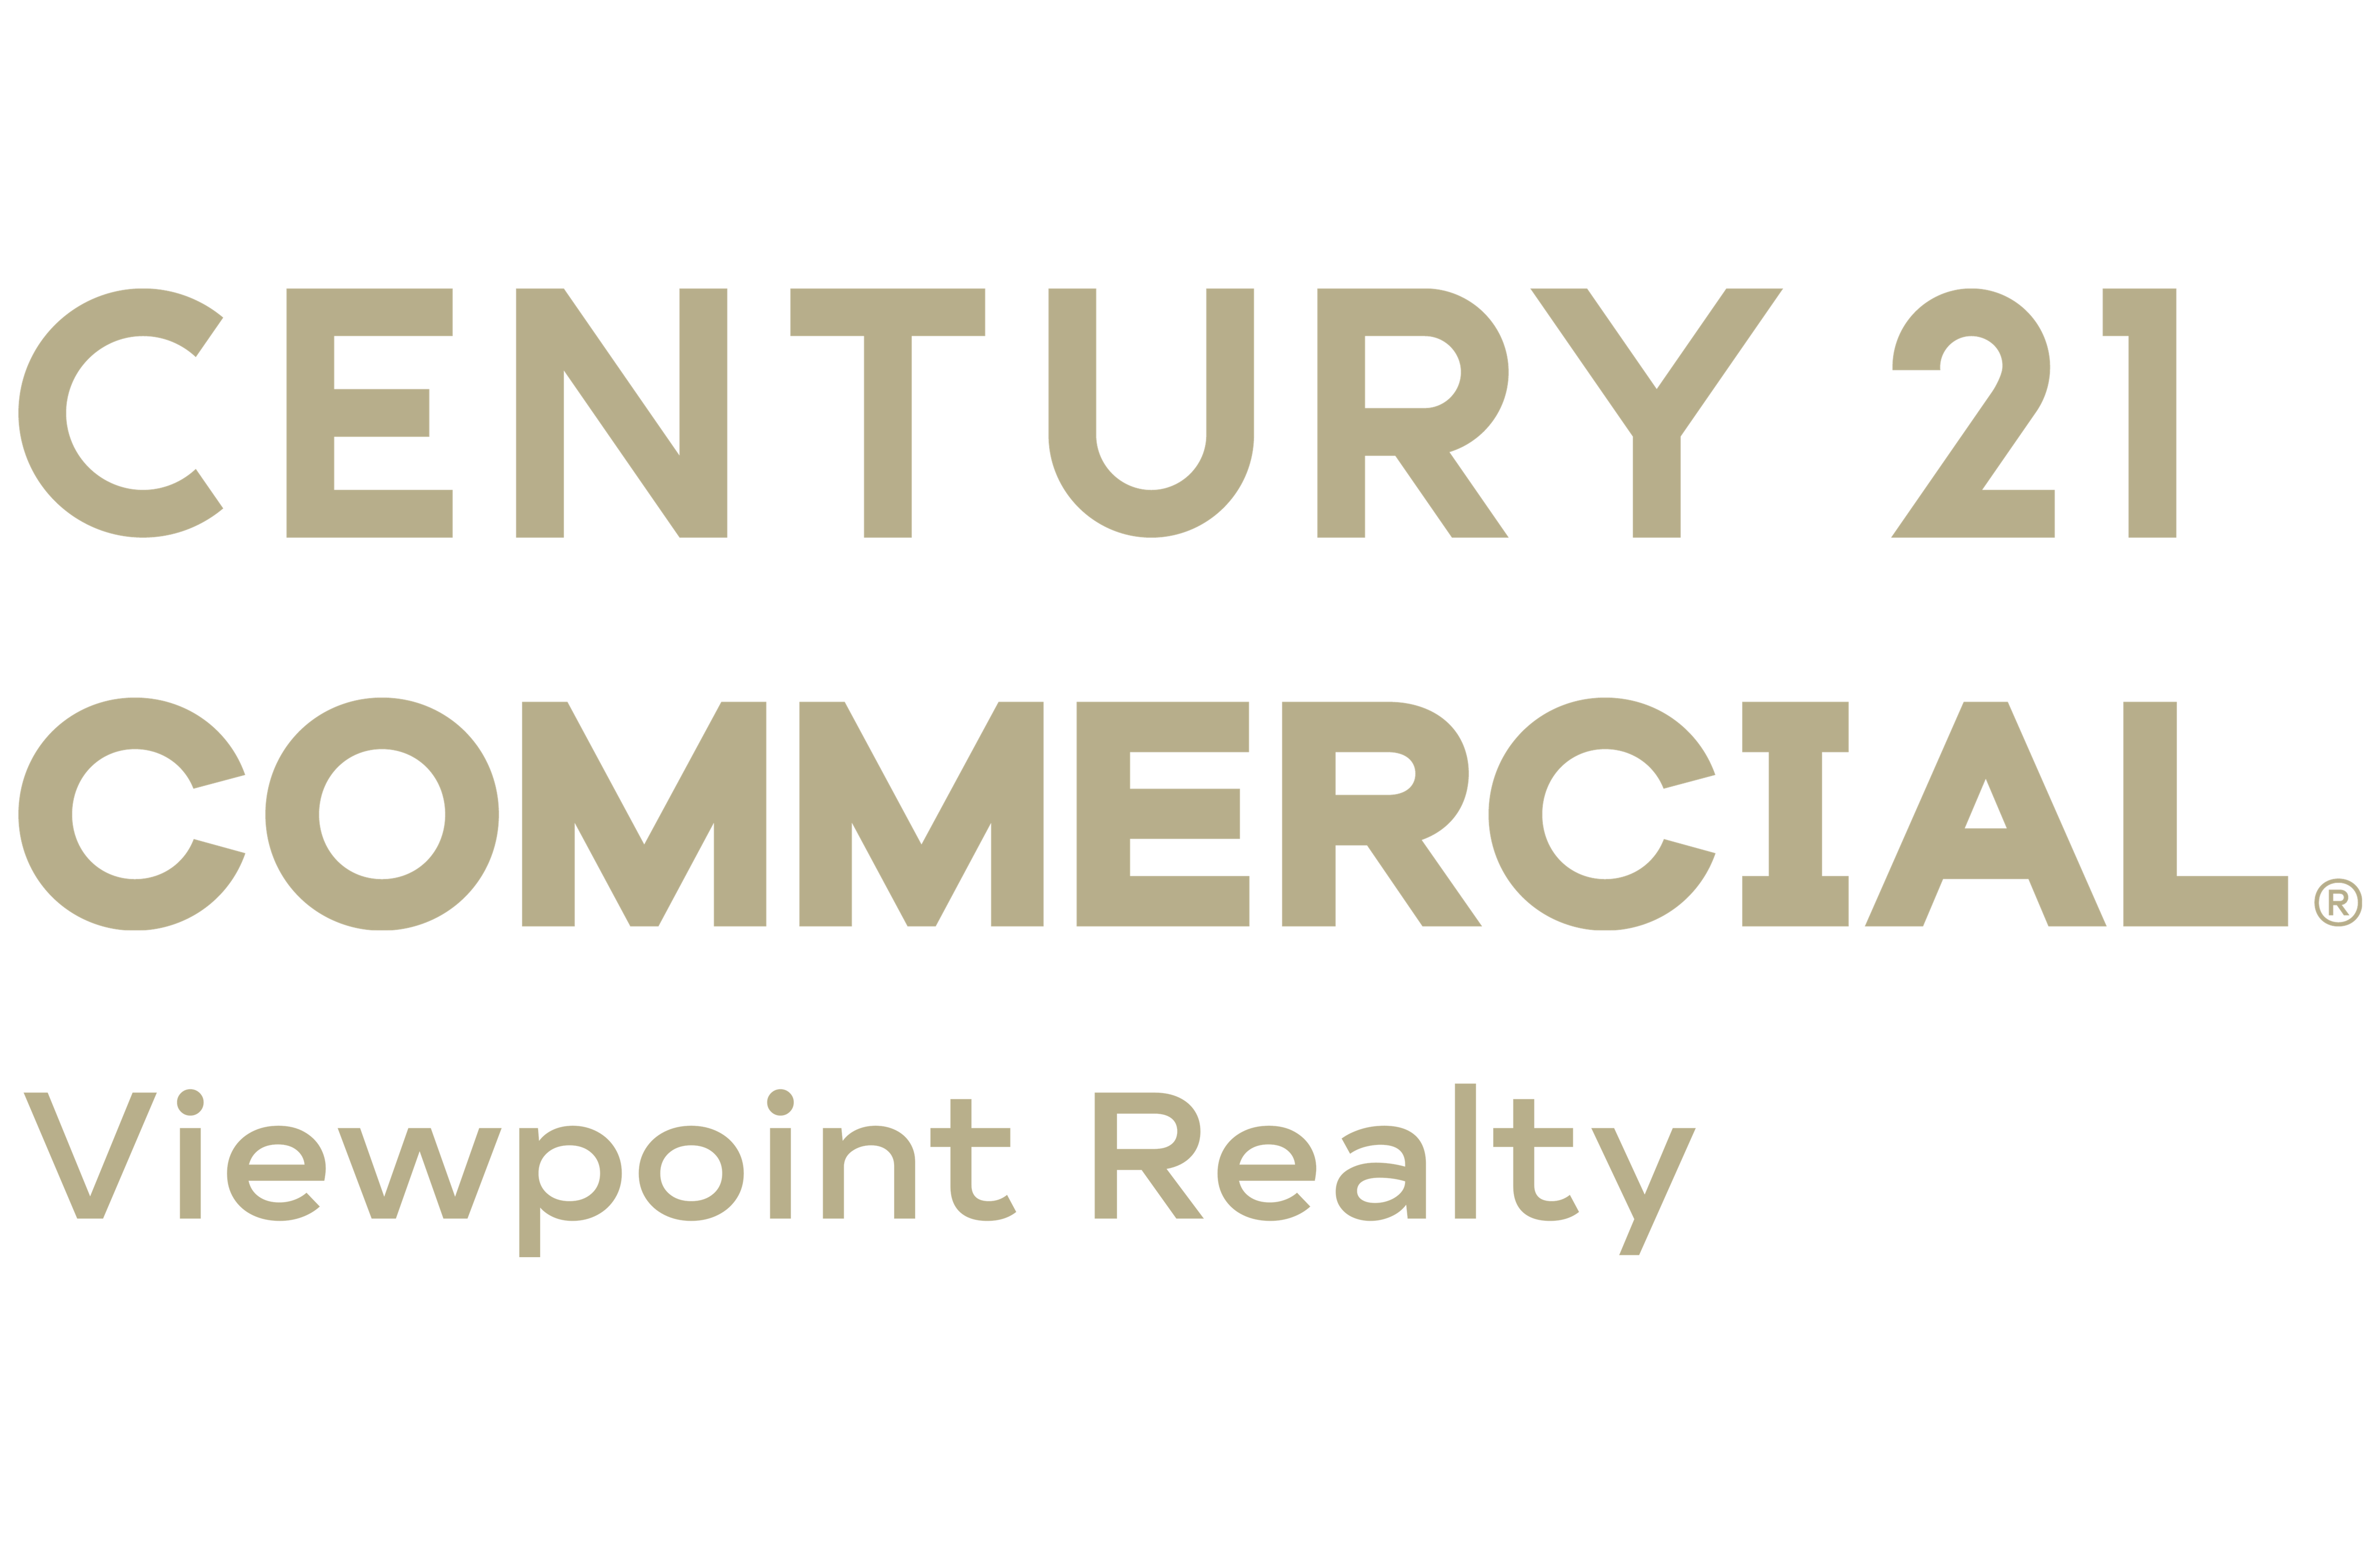 George Vinc of CENTURY 21 Viewpoint Realty logo